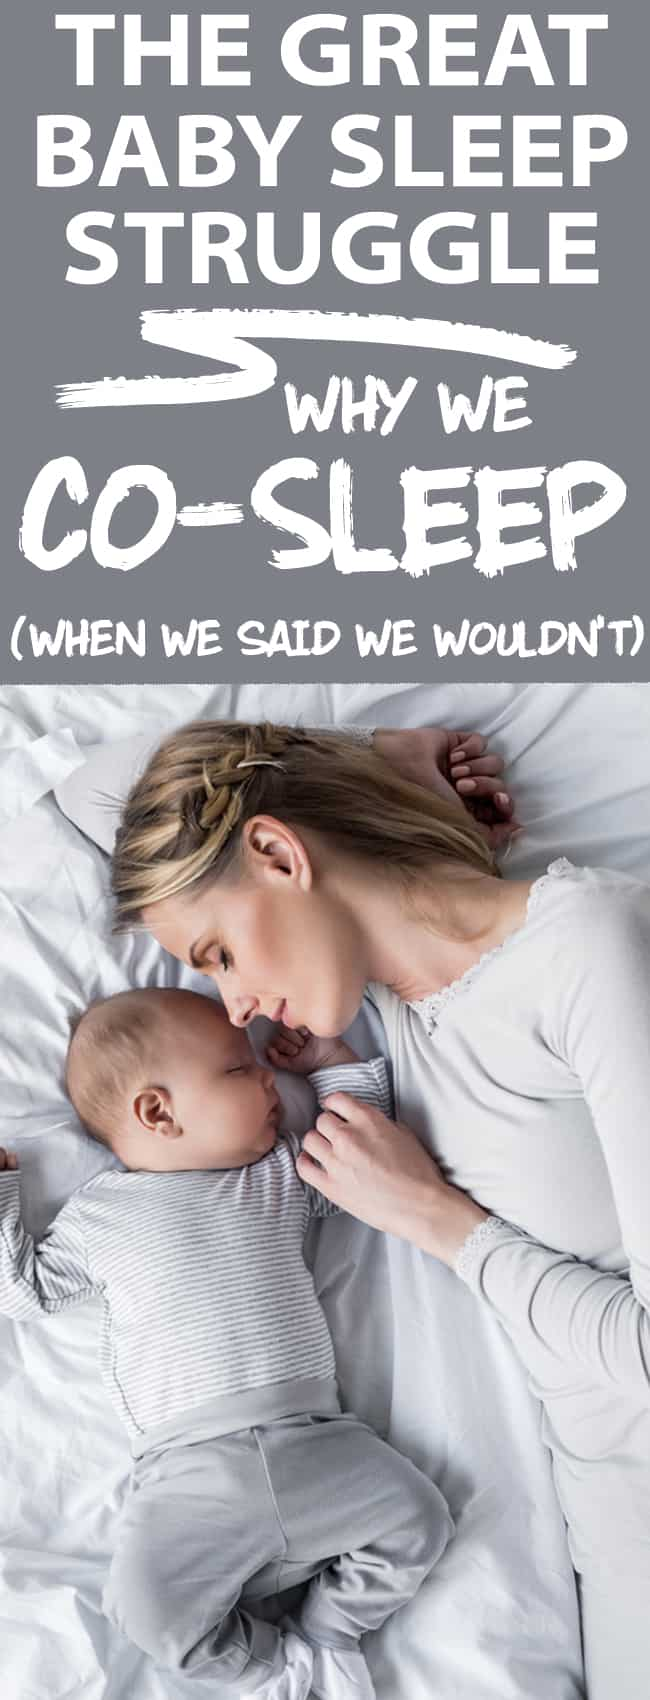 we said you would sleep train, but instead started co sleeping out of desperation -and it was the best decision we ever made! I LOVE sleeping with my babe!